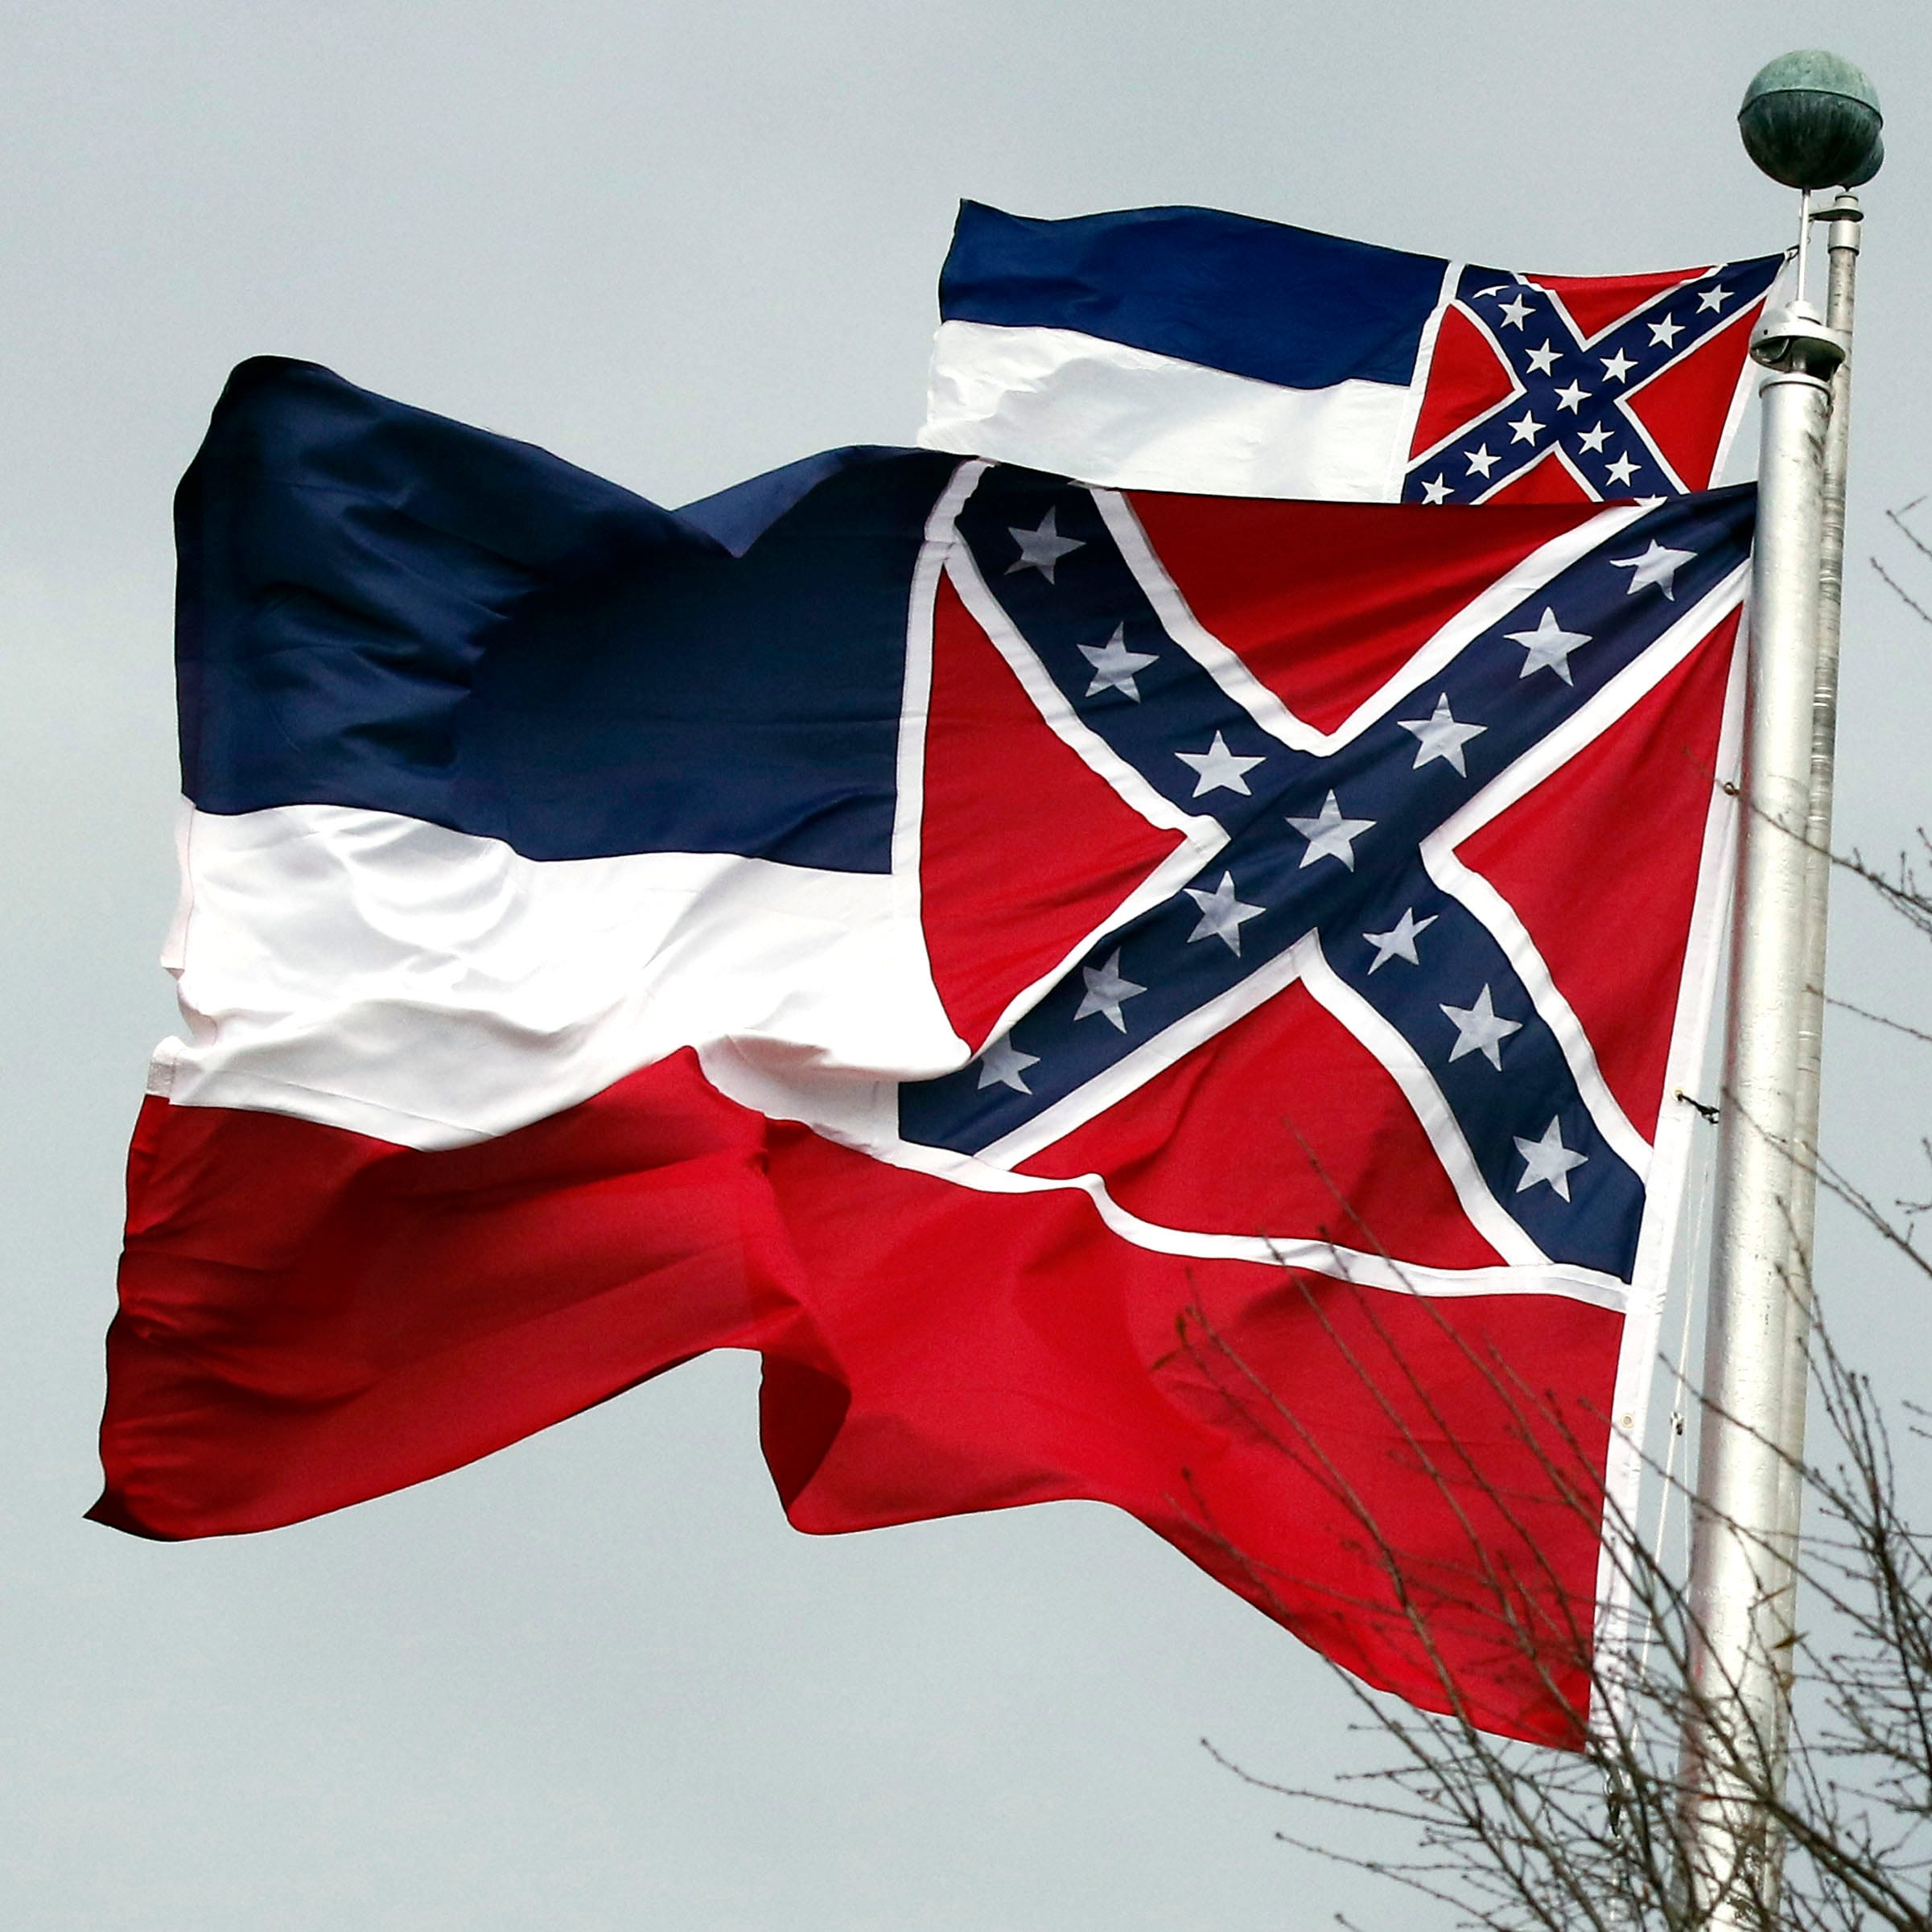 Mississippi flag: Young people don't want to live here, AG hopeful says, so change it